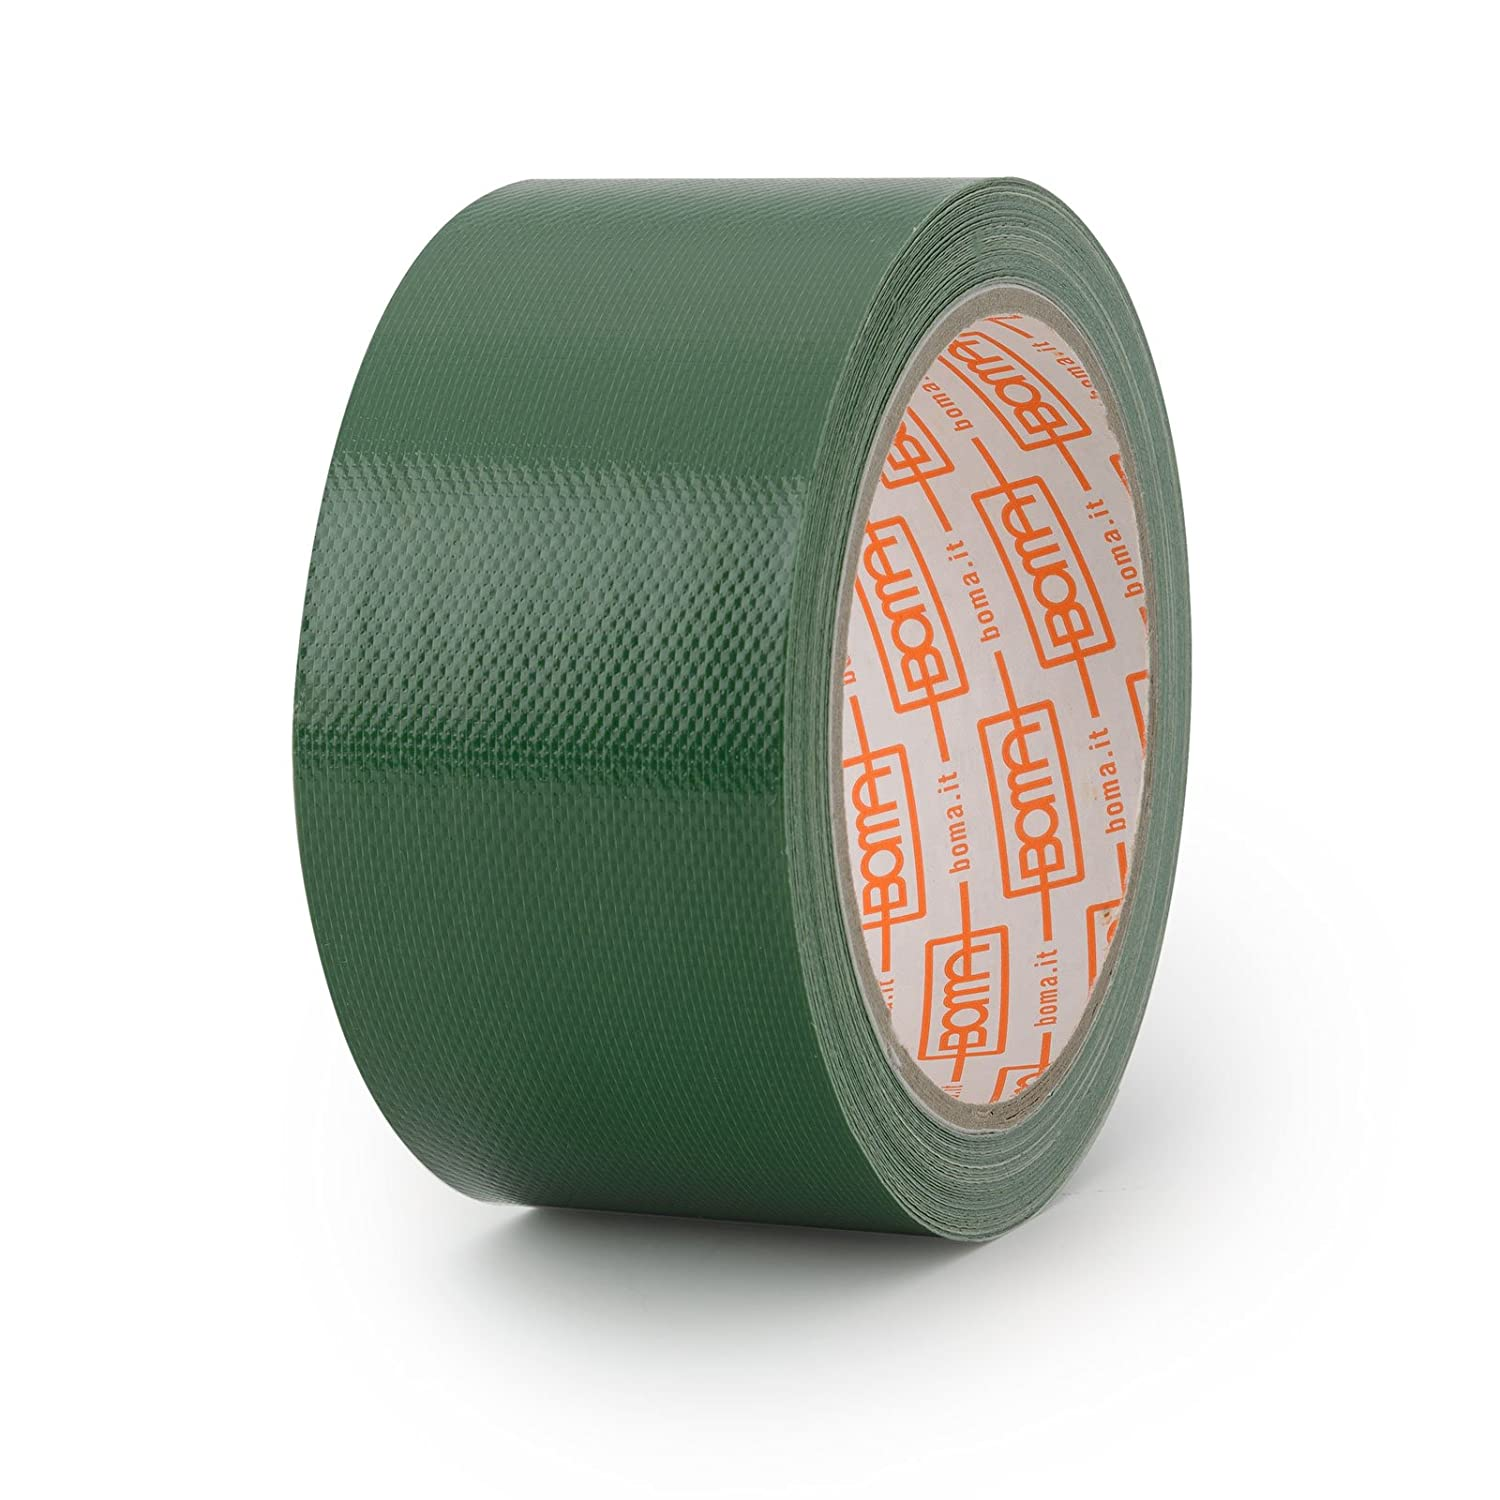 Boma Repair B47008300013 Gaffer Tape for Repairs, 50 mm x 5 m, Green 8013074000700